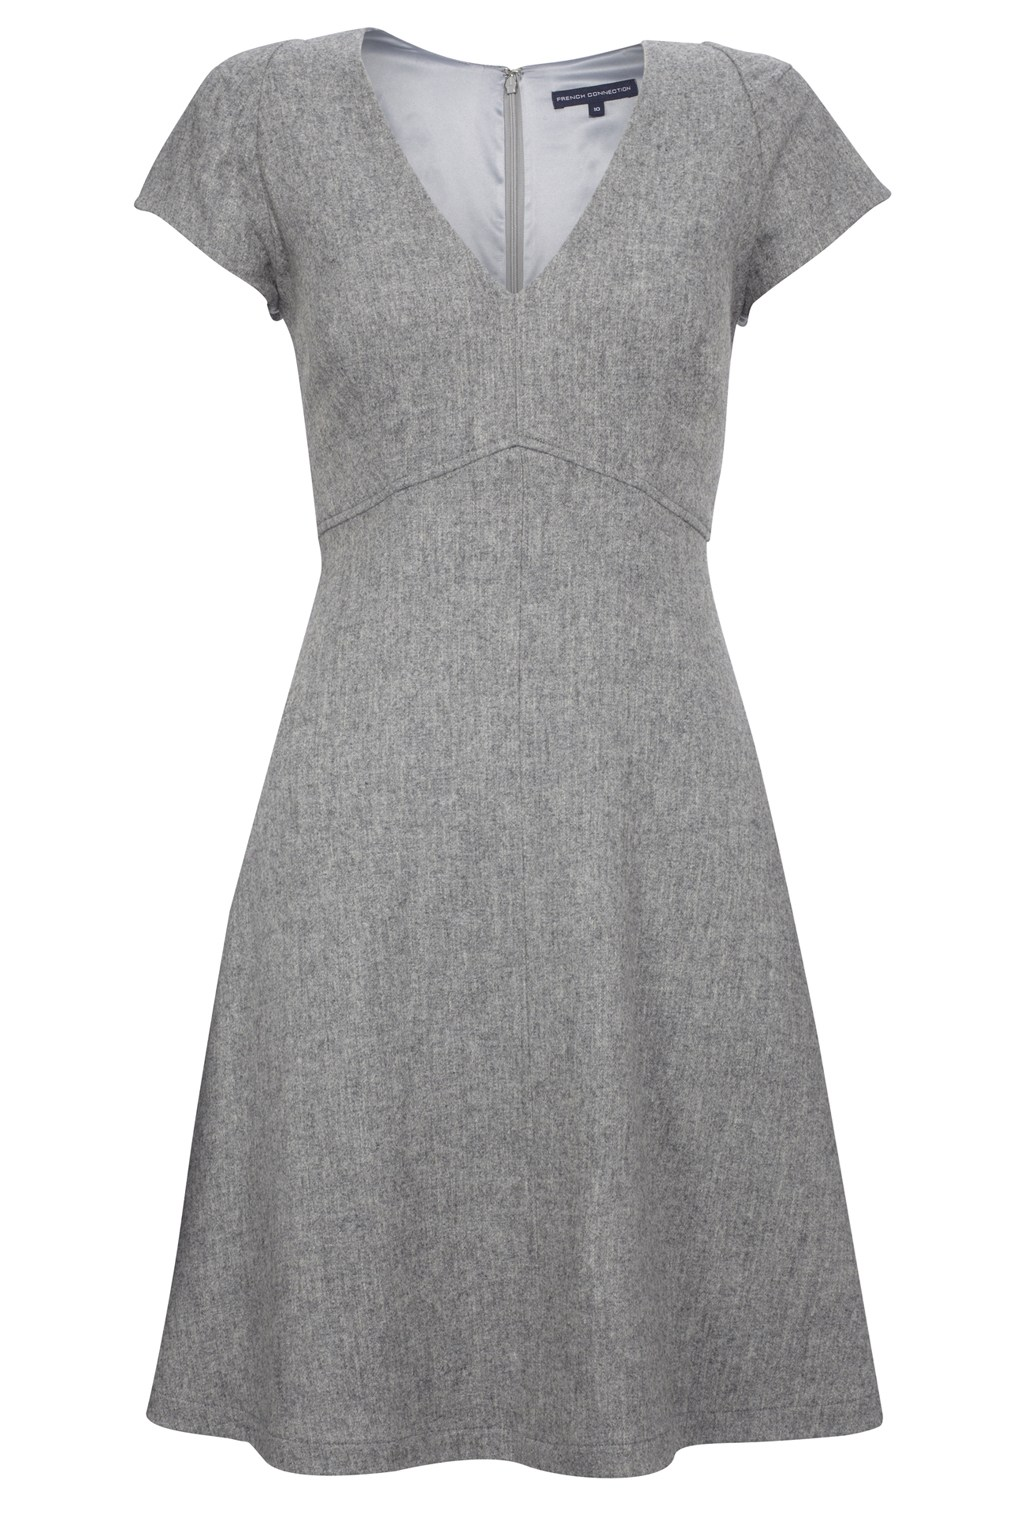 Shop for Women's Dresses from our Women range at John Lewis & Partners. Free Delivery on orders over £